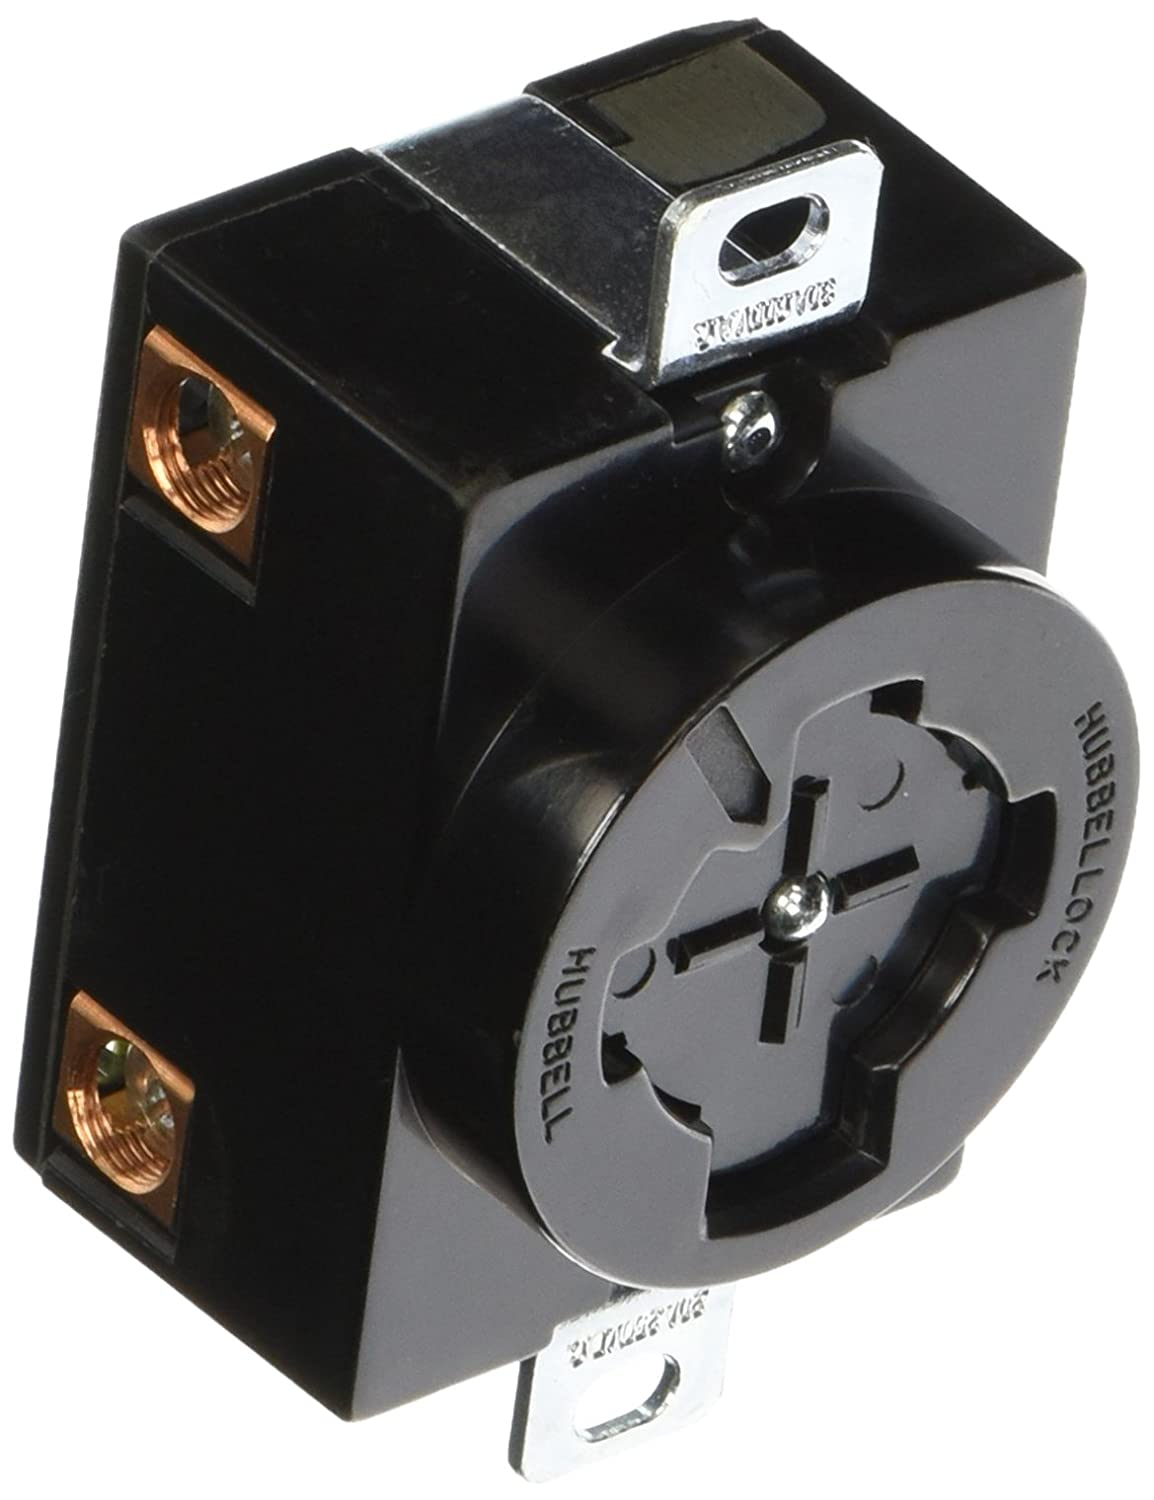 Hubbell HBL20403 Hubbellock Receptacle, 30 amp, 600V, 3 Pole 4 Wire ...